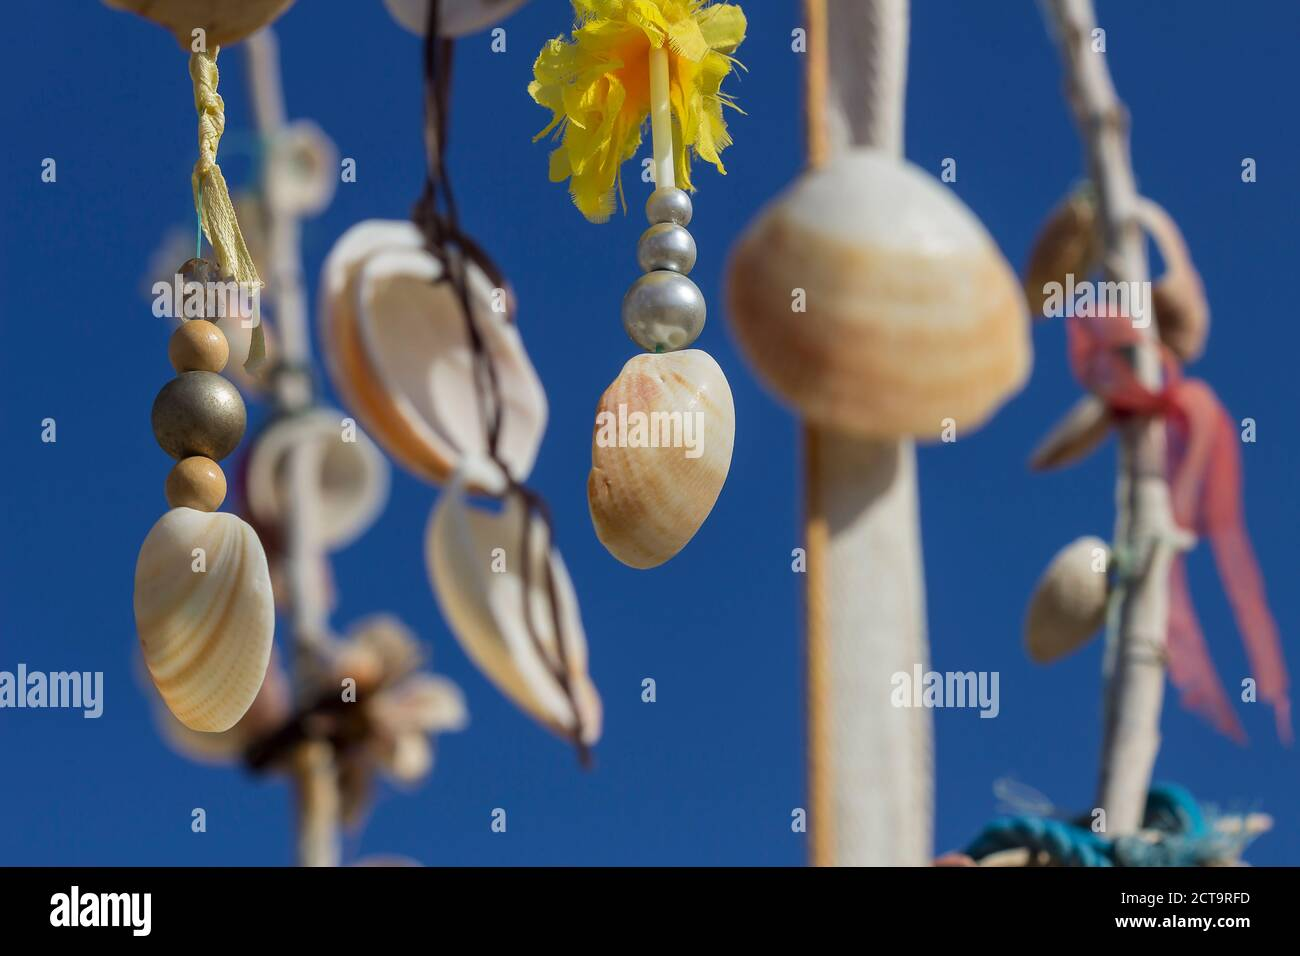 Spain, Balearic Islands, Formentera, Wish tree with mussels Stock Photo